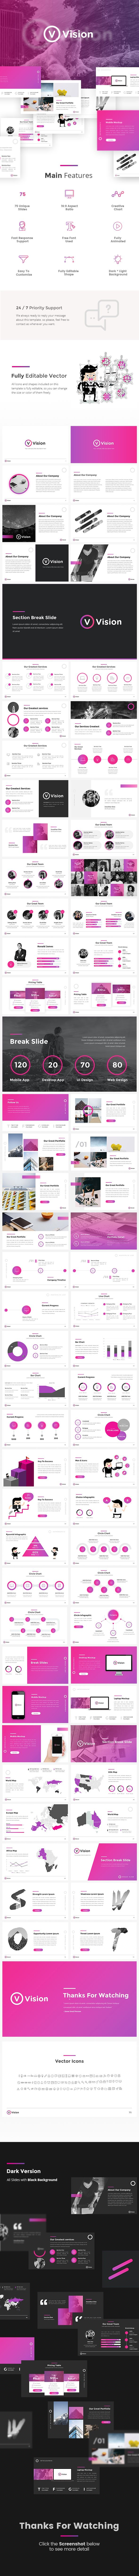 Vision — Google Slides PPTX #clean powerpoint #animated presentation • Download ➝ https://graphicriver.net/item/vision-creative-google-slides-template/20007877?ref=pxcr